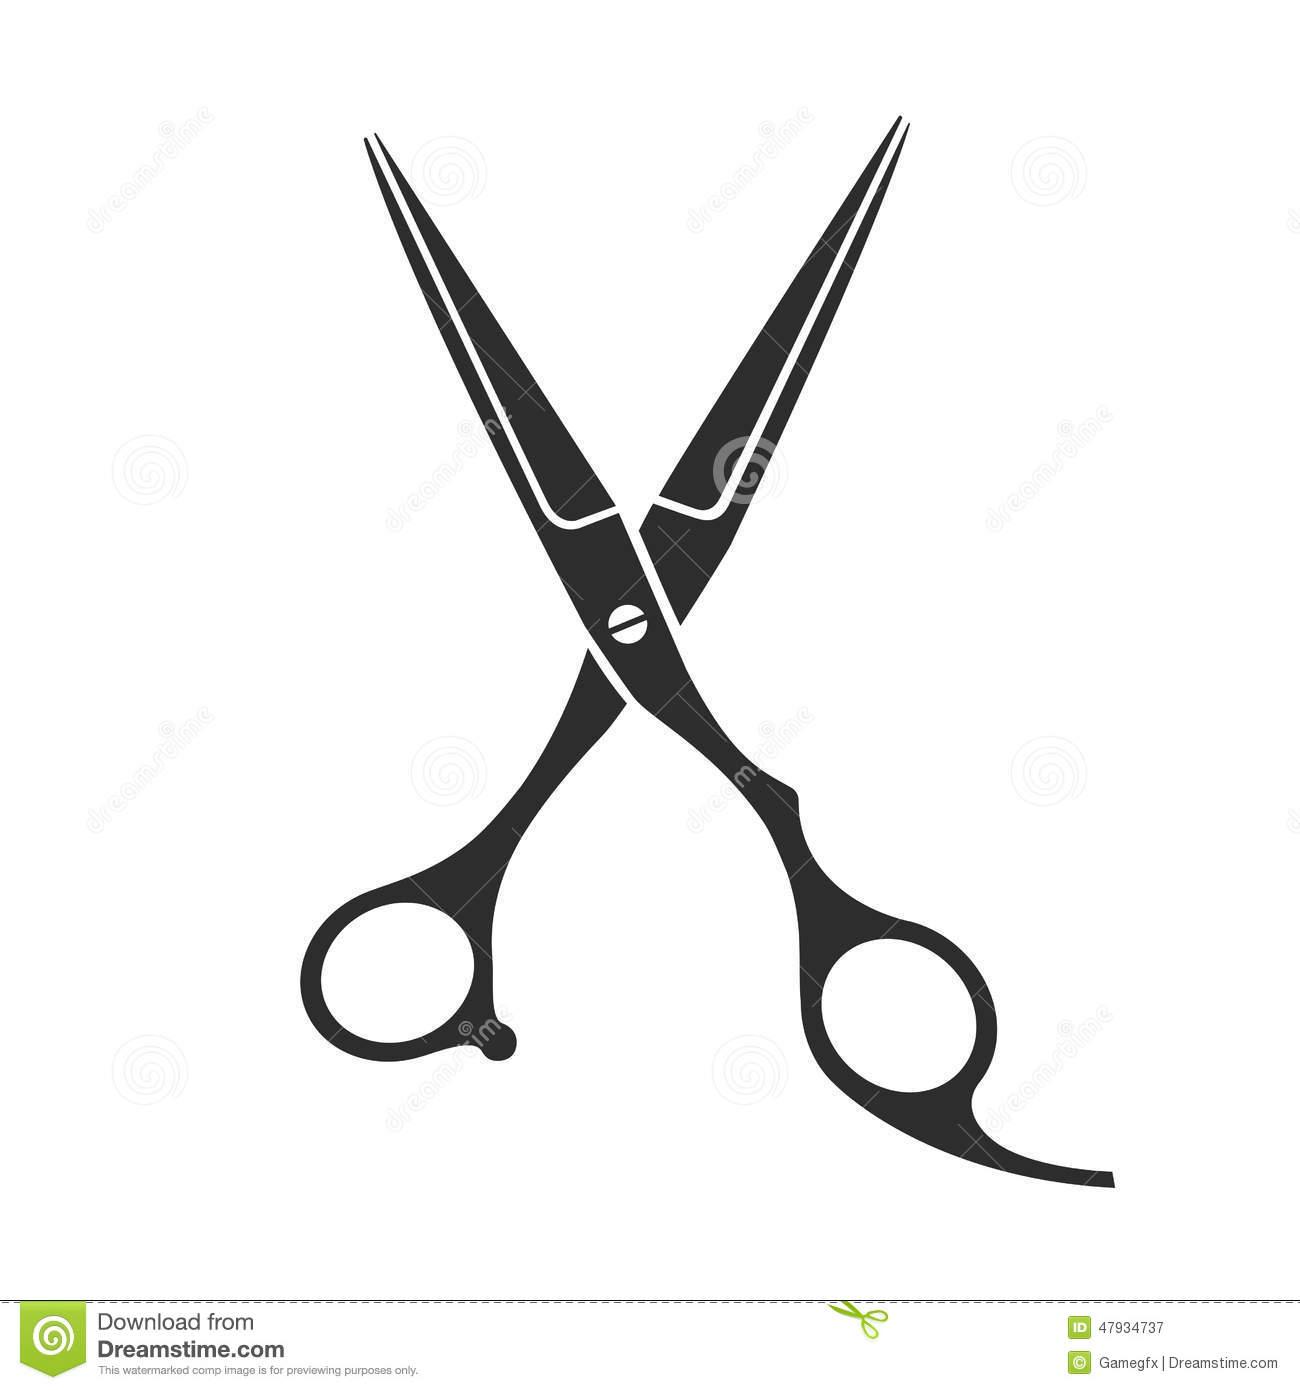 Vintage Barber Shop Scissors Stock Vector